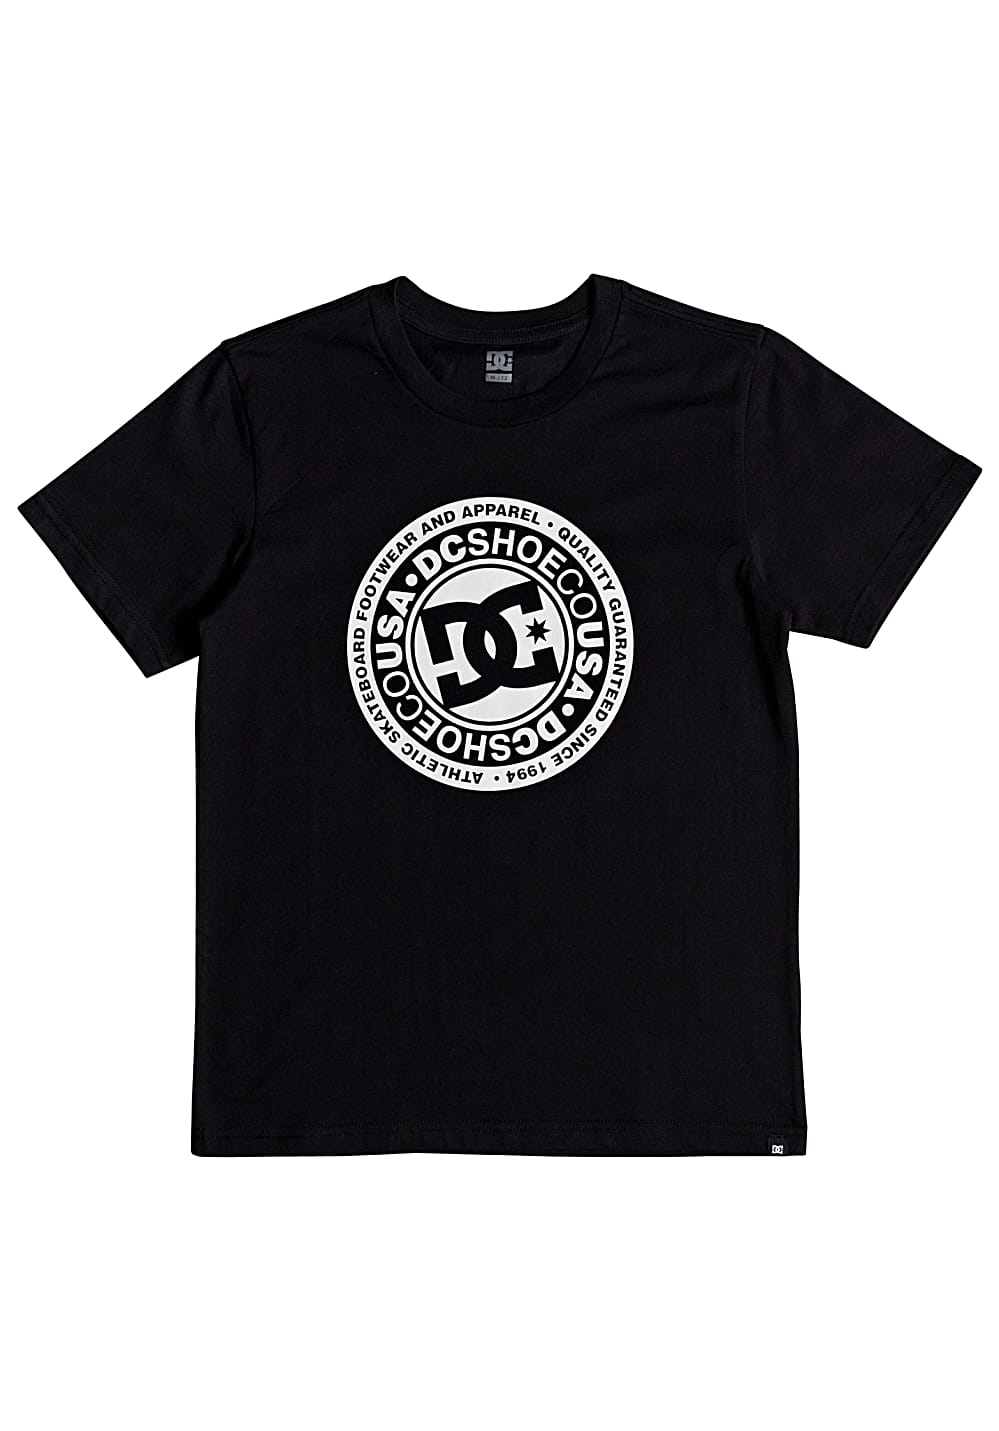 Boysoberteile - DC Circle Star T-Shirt für Jungs Schwarz - Onlineshop Planet Sports